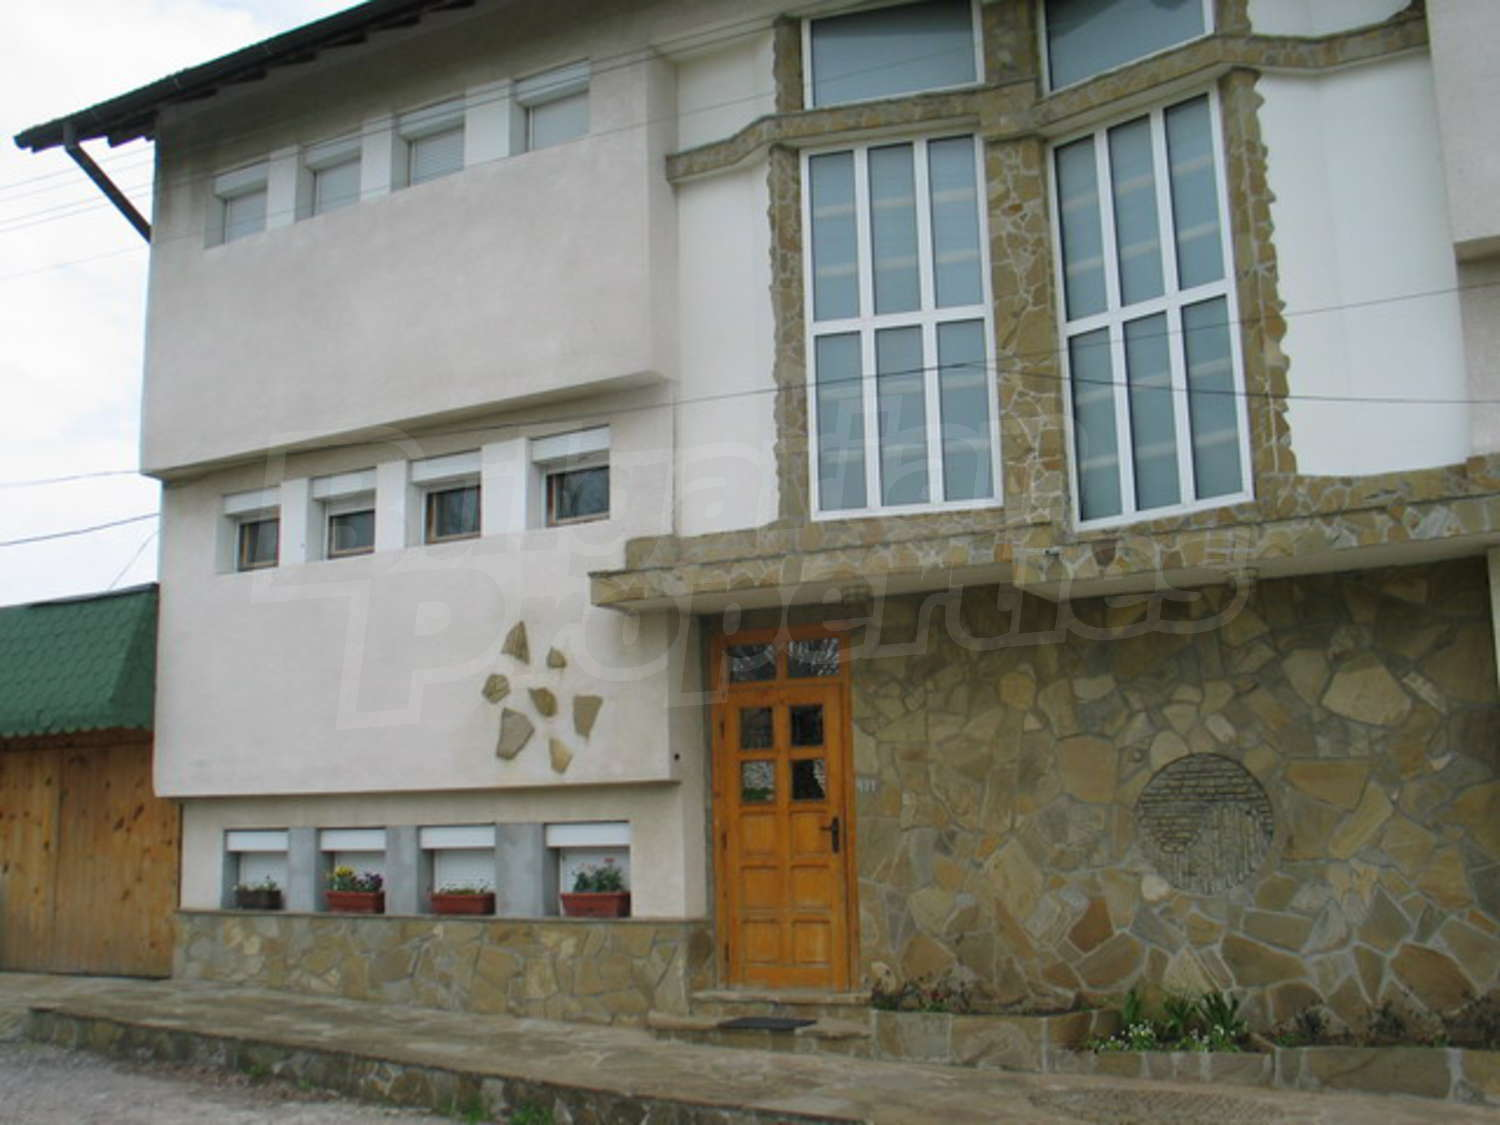 House for sale near veliko tarnovo bulgaria huge for Big house for sale with swimming pool